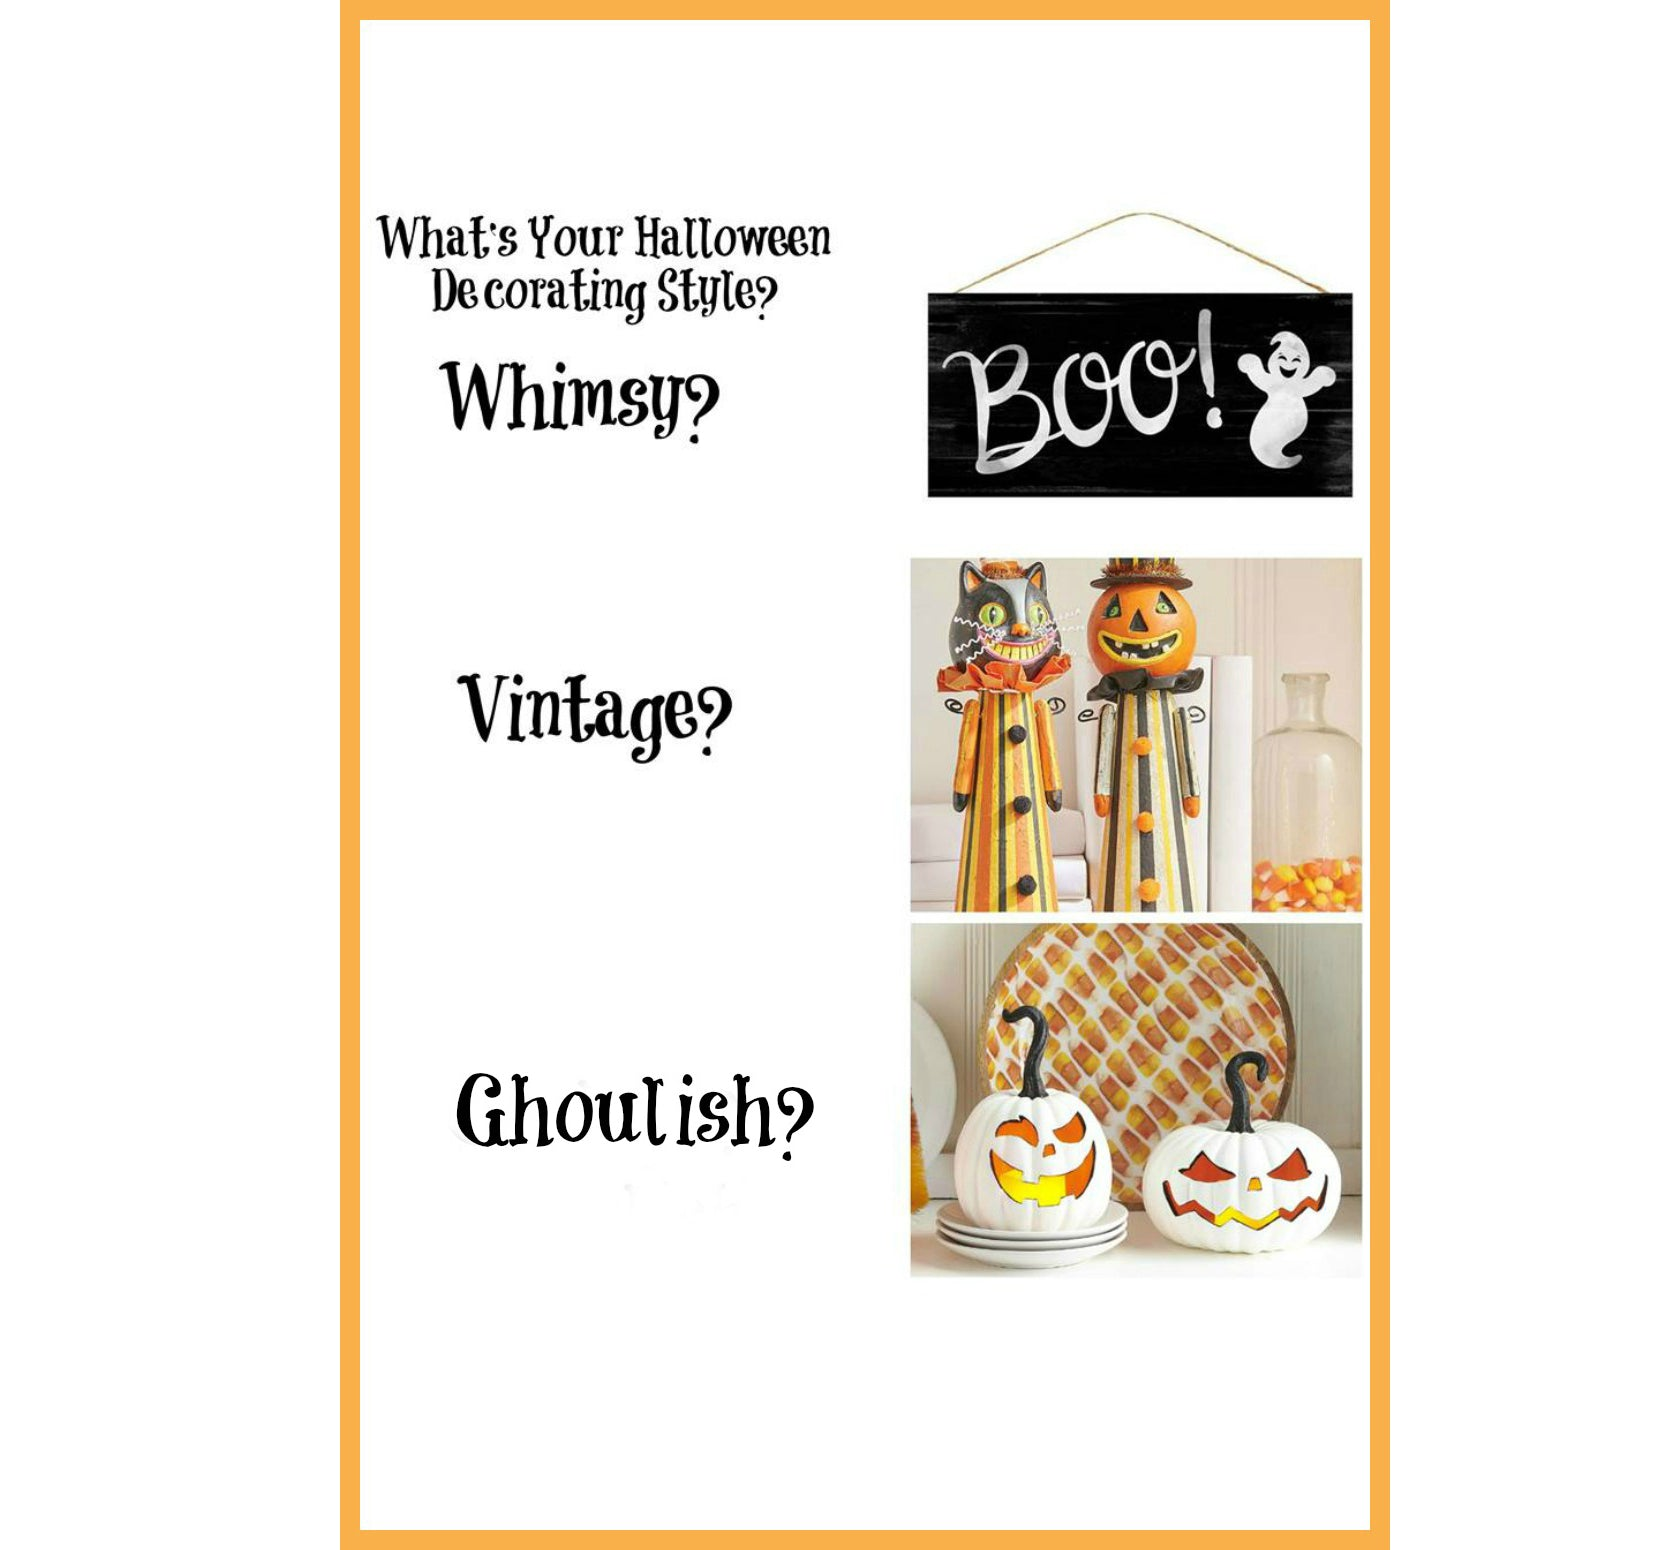 What's Your Halloween Style - Whimsy? Vintage? Ghoulish?